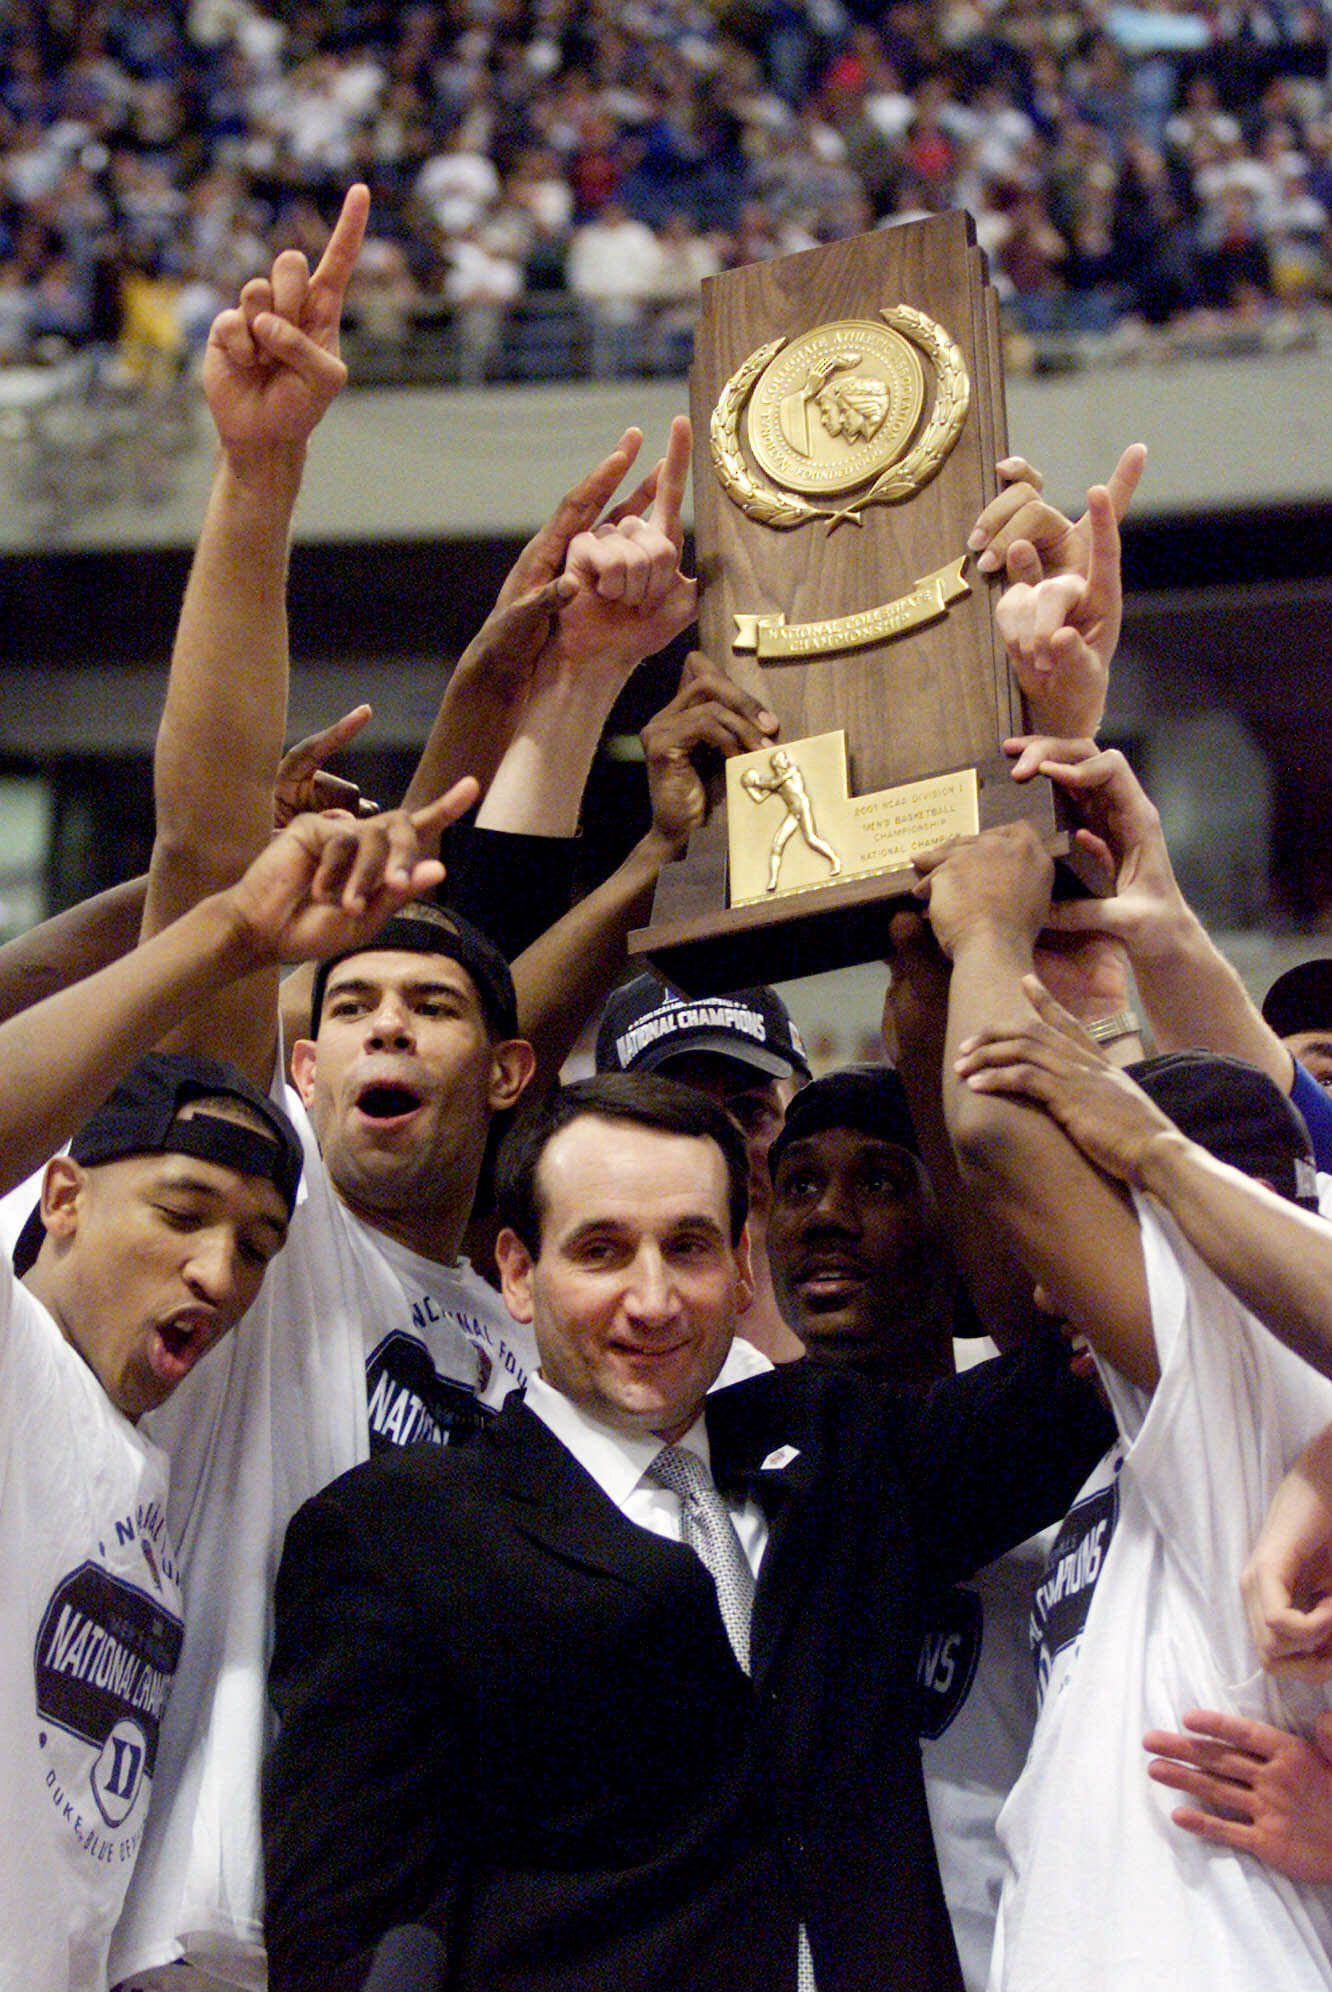 Shane Battier, Mike Krzyzewski standing in front of a crowd: Duke coach Mike Krzyzewski and his Blue Devils hoist the championship trophy after beating Arizona 82-72 in the championship game of the Final Four in Minneapolis on April 2, 2001.